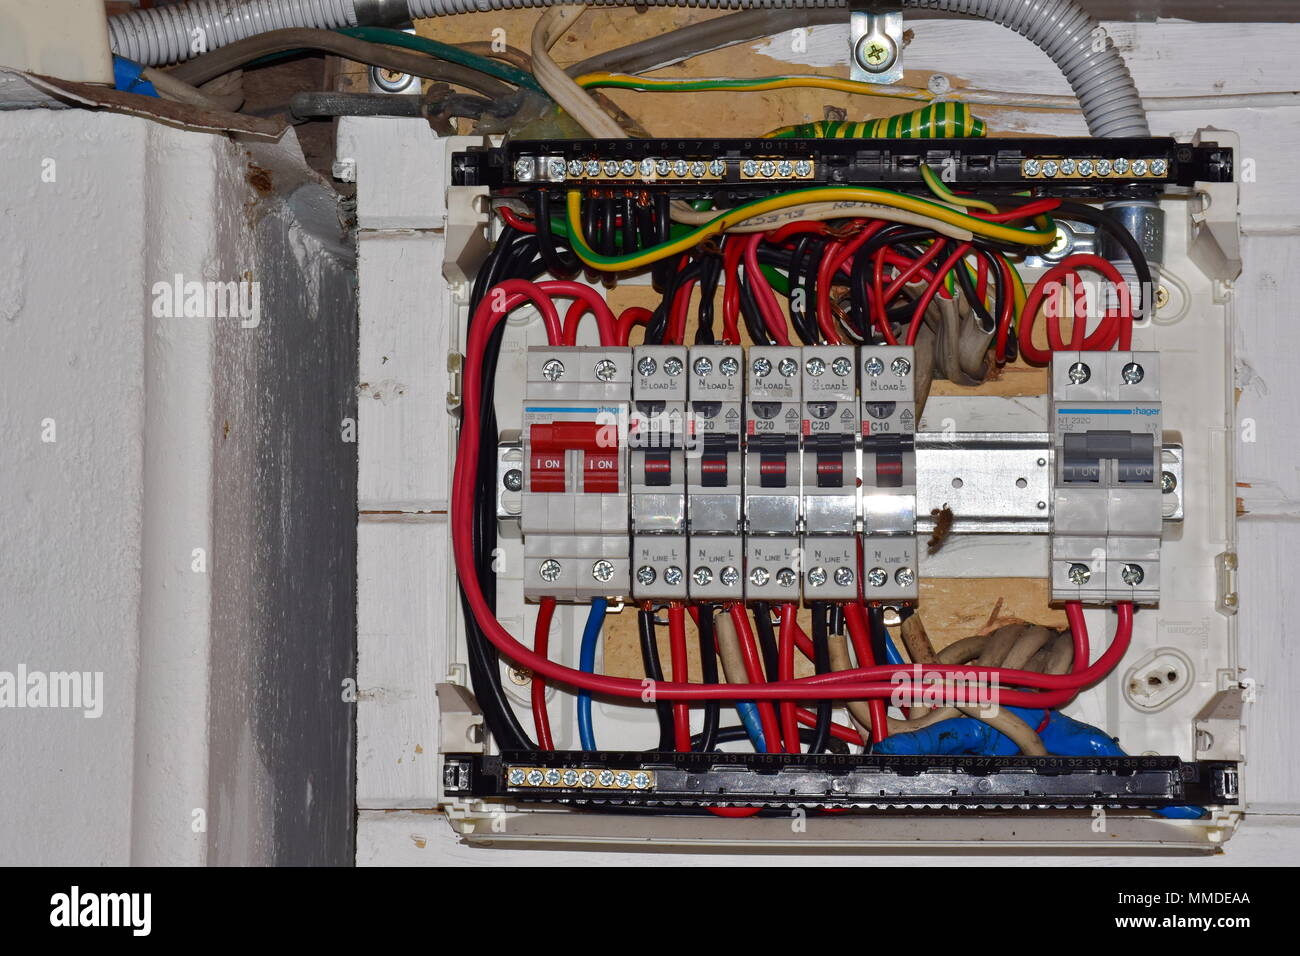 fusebox open stock photo 184693442 alamy rh alamy com open fuse box prius open fuse box bmw 1 series